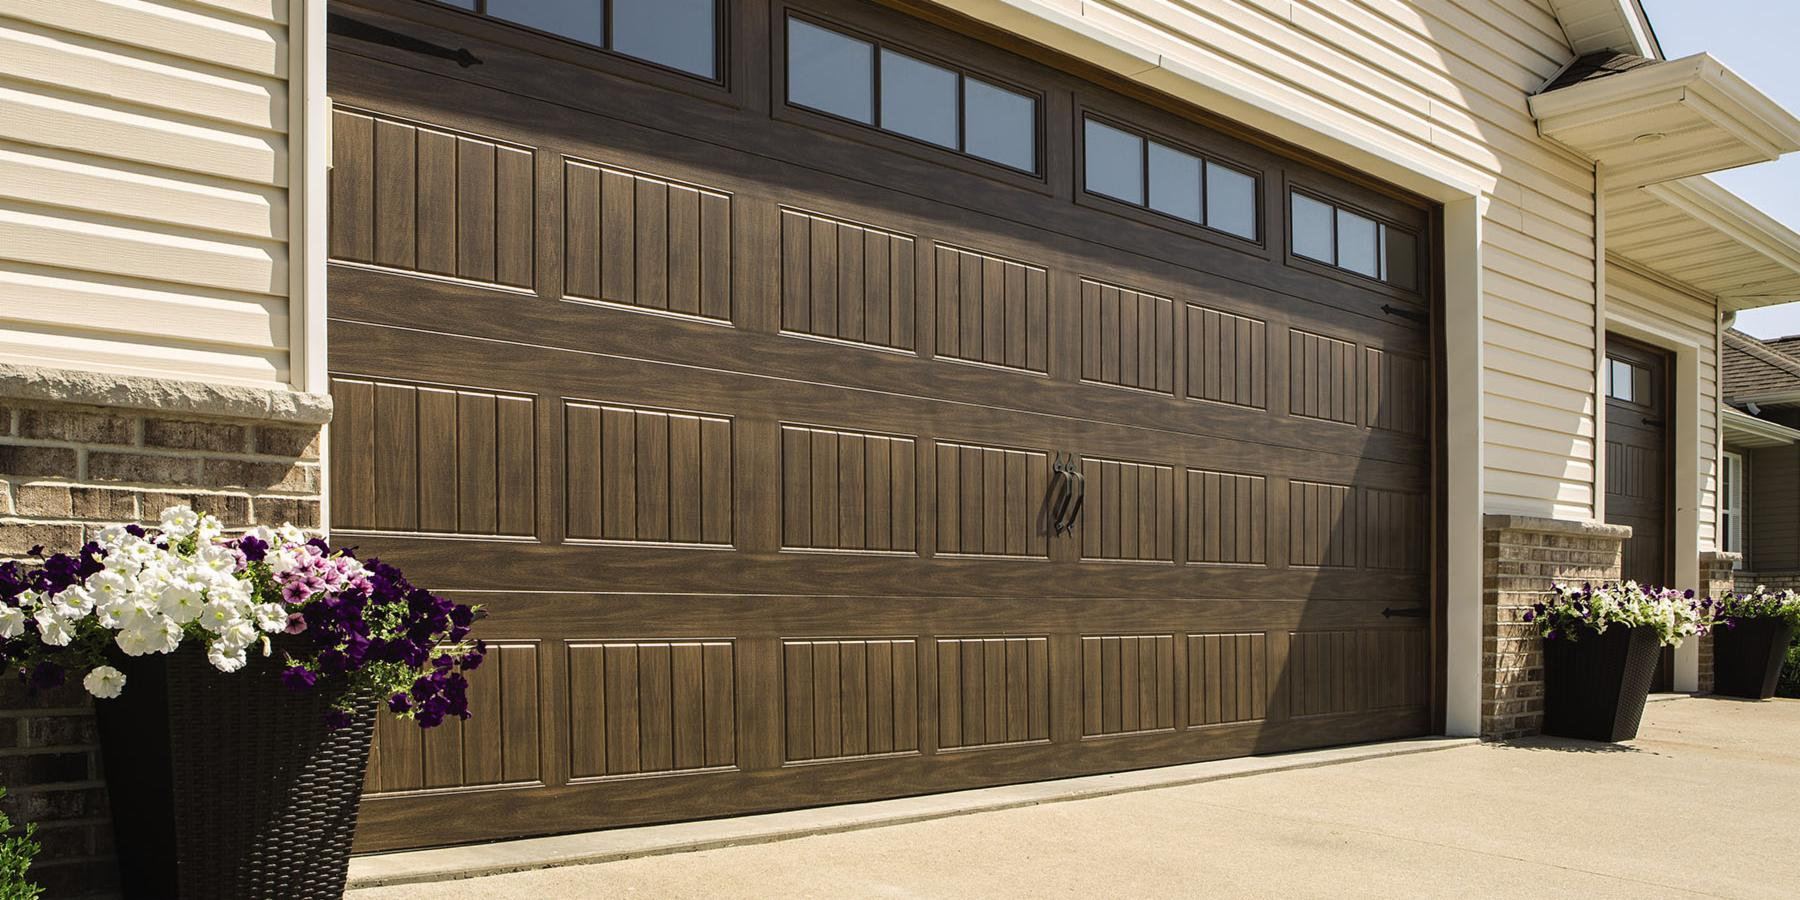 How To Keep Your Garage Cool In The Summer